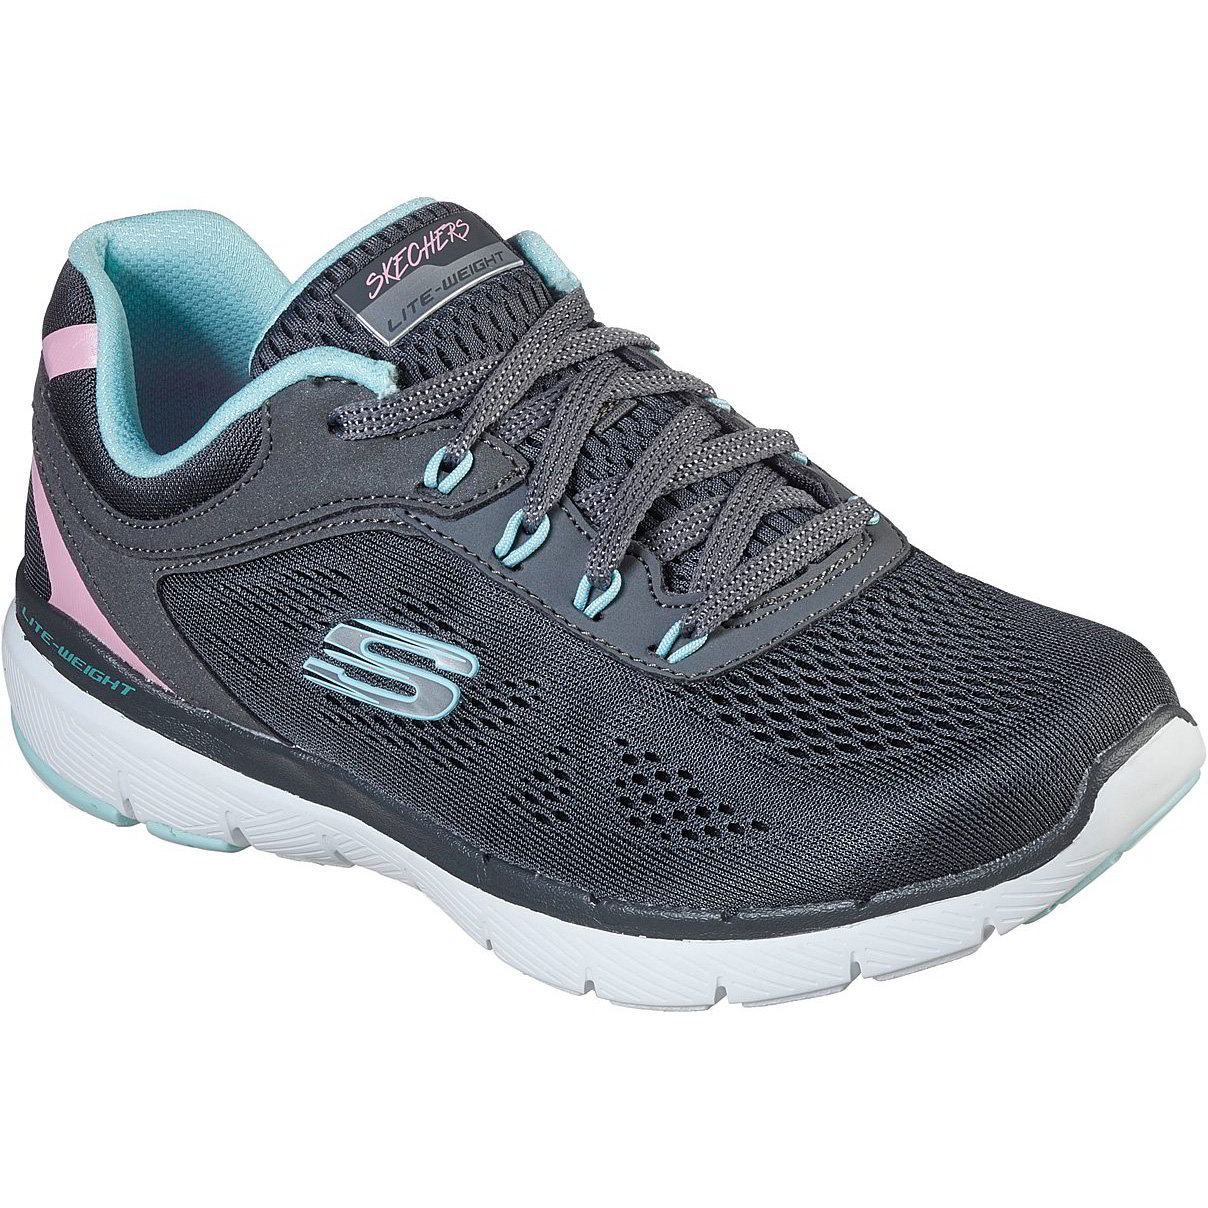 Skechers Womens Flex Appeal 3.0 Steady Move Trainers - Charcoal Turquoise